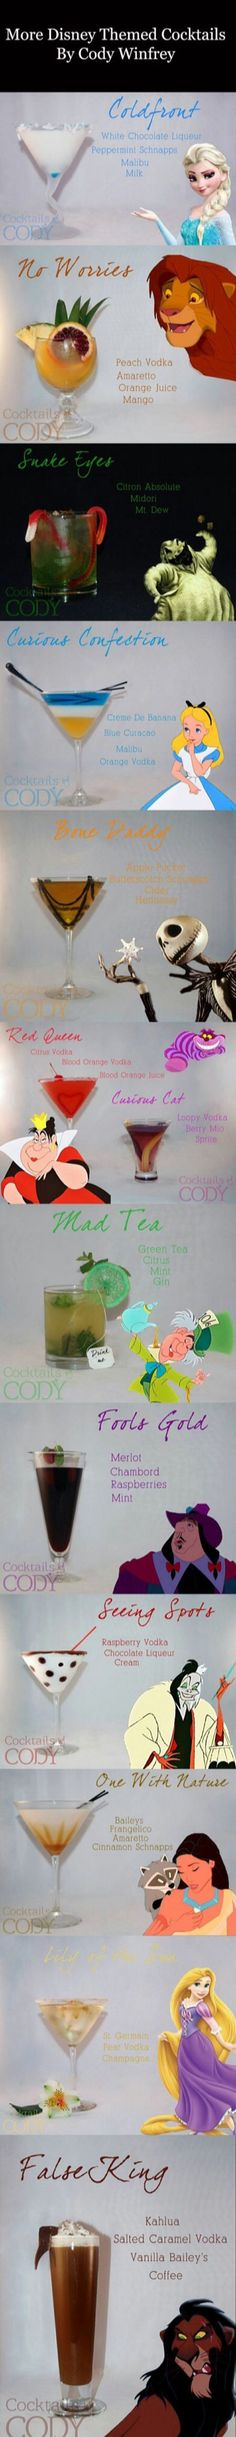 More Disney cocktails